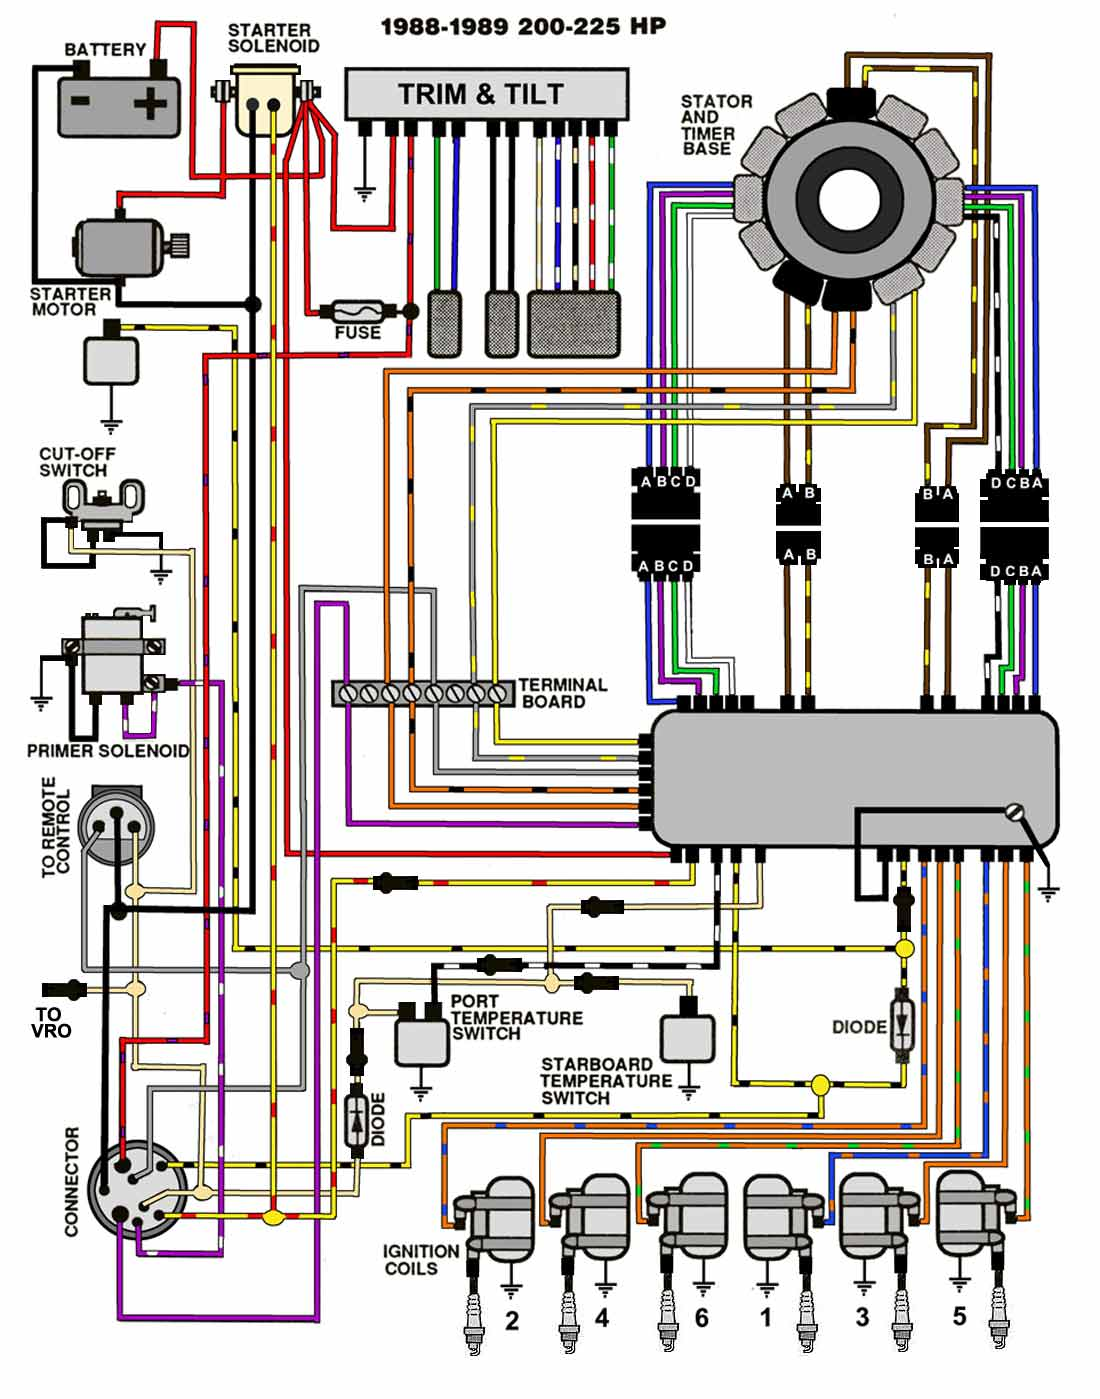 1988_89_200_225 mastertech marine evinrude johnson outboard wiring diagrams 70 HP Johnson Ignition Wiring at bakdesigns.co